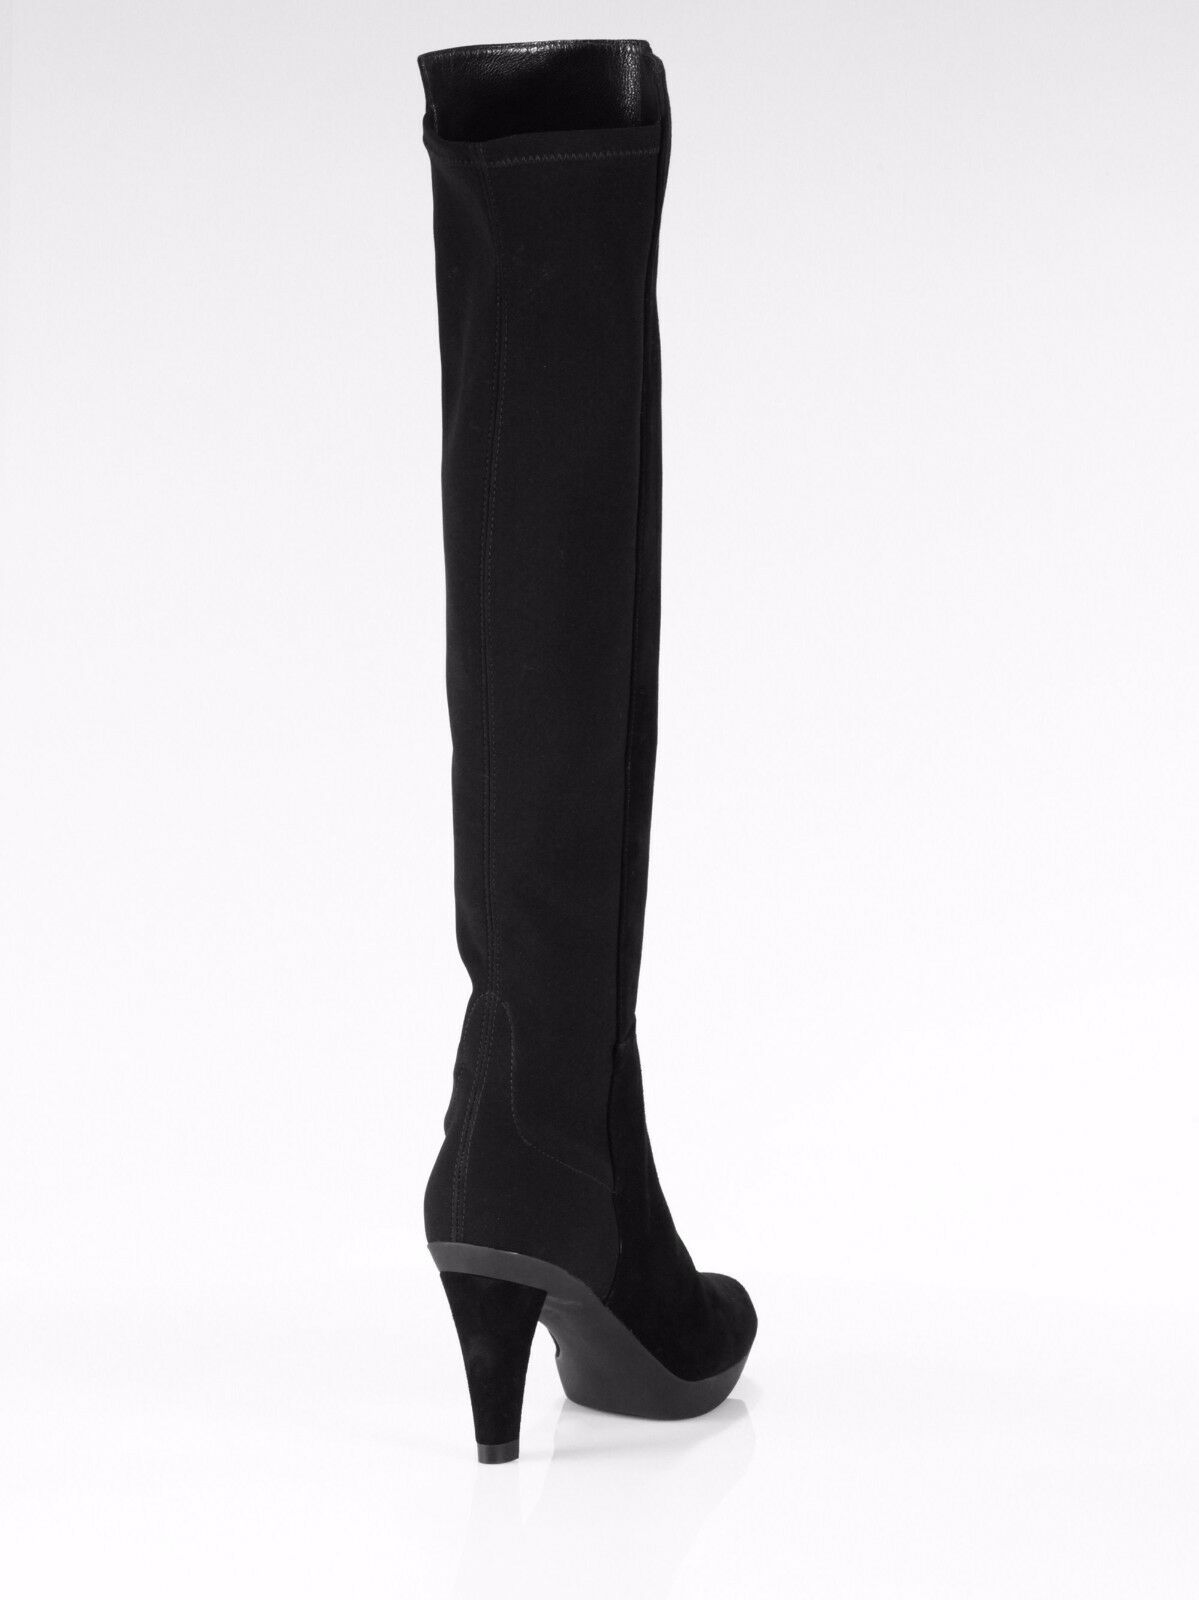 645 Stuart Weitzman Demi Over The Knee Suede Stretch Back bottes femmes 10.5 NEW 3c1426